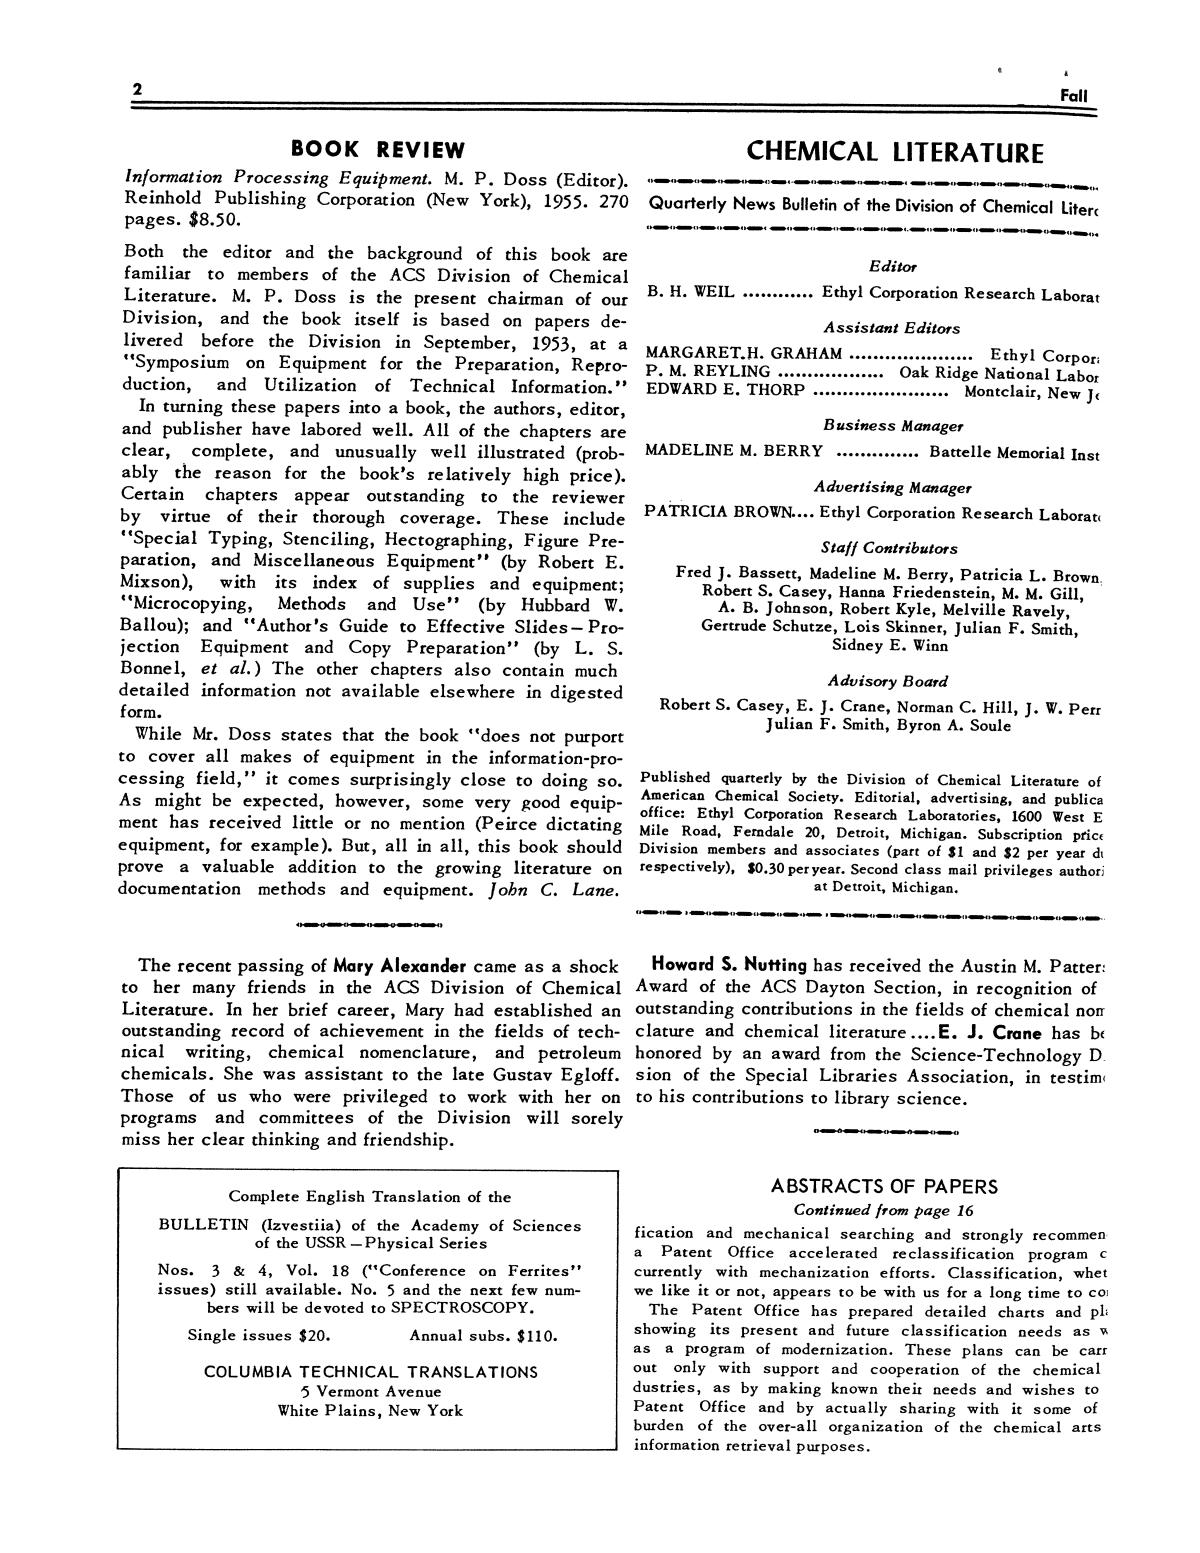 Chemical Literature, Volume 7, Number 3, Fall 1955                                                                                                      2